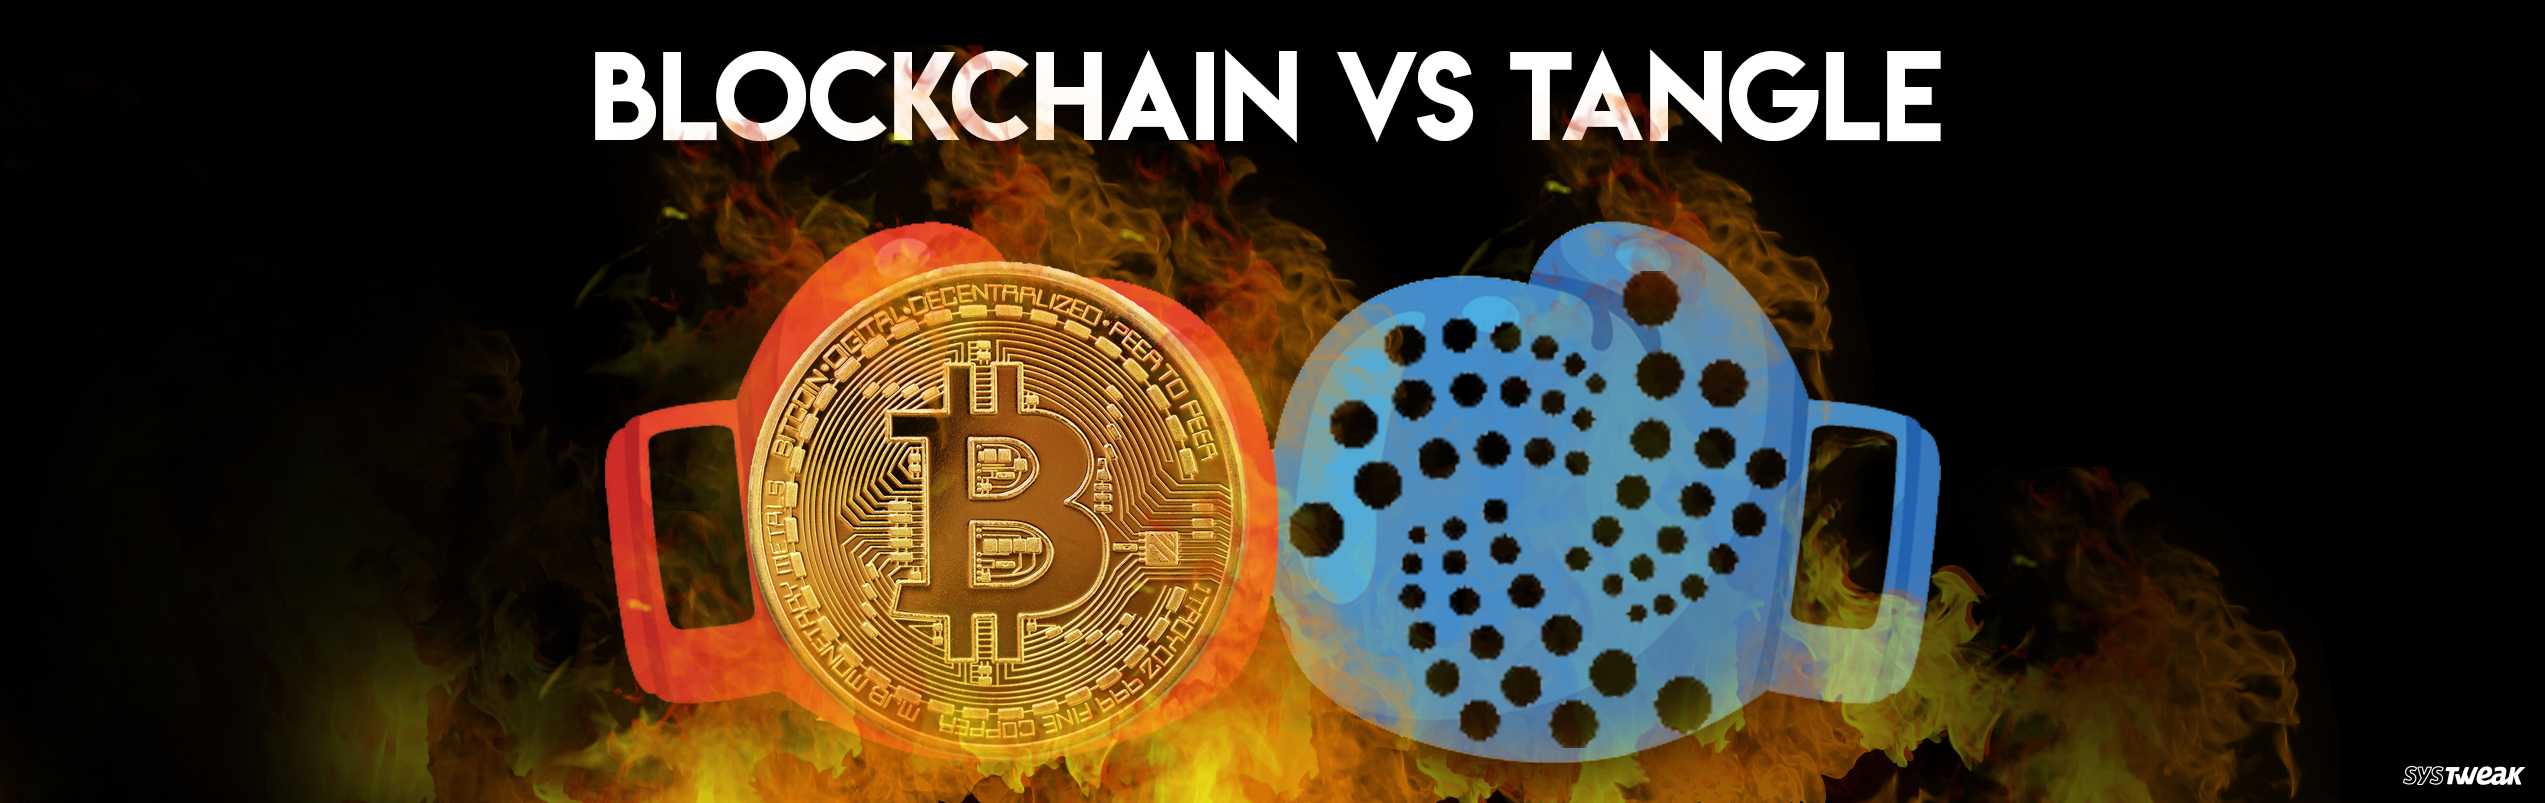 The Ultimate Battle Between Blockchain and Tangle